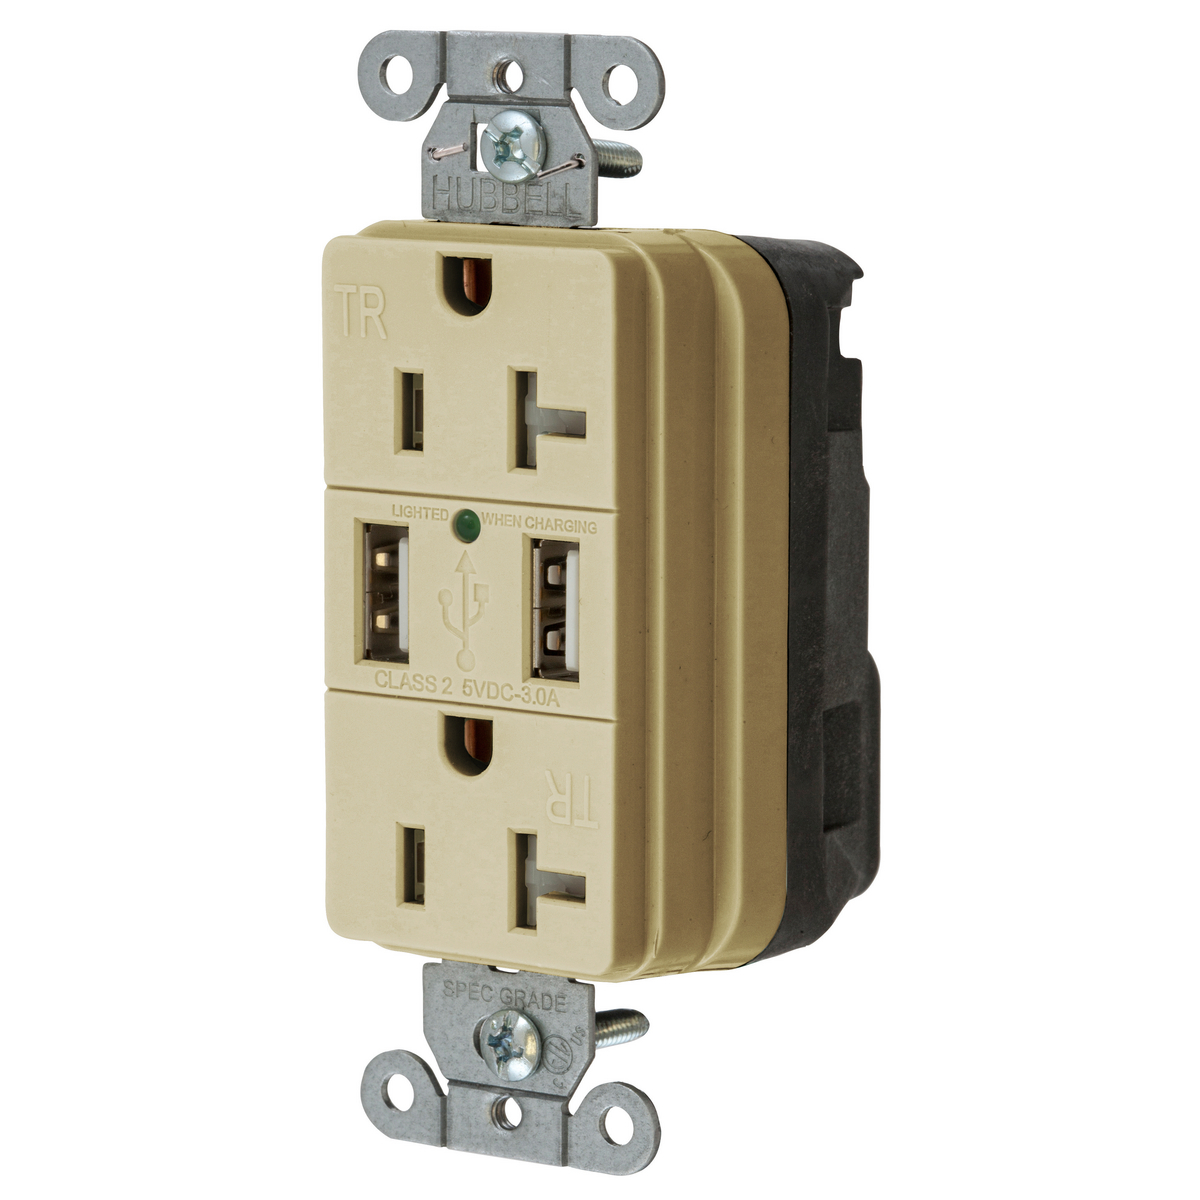 snap20usbi snapconnect receptacles straight blade devices rh hubbell com